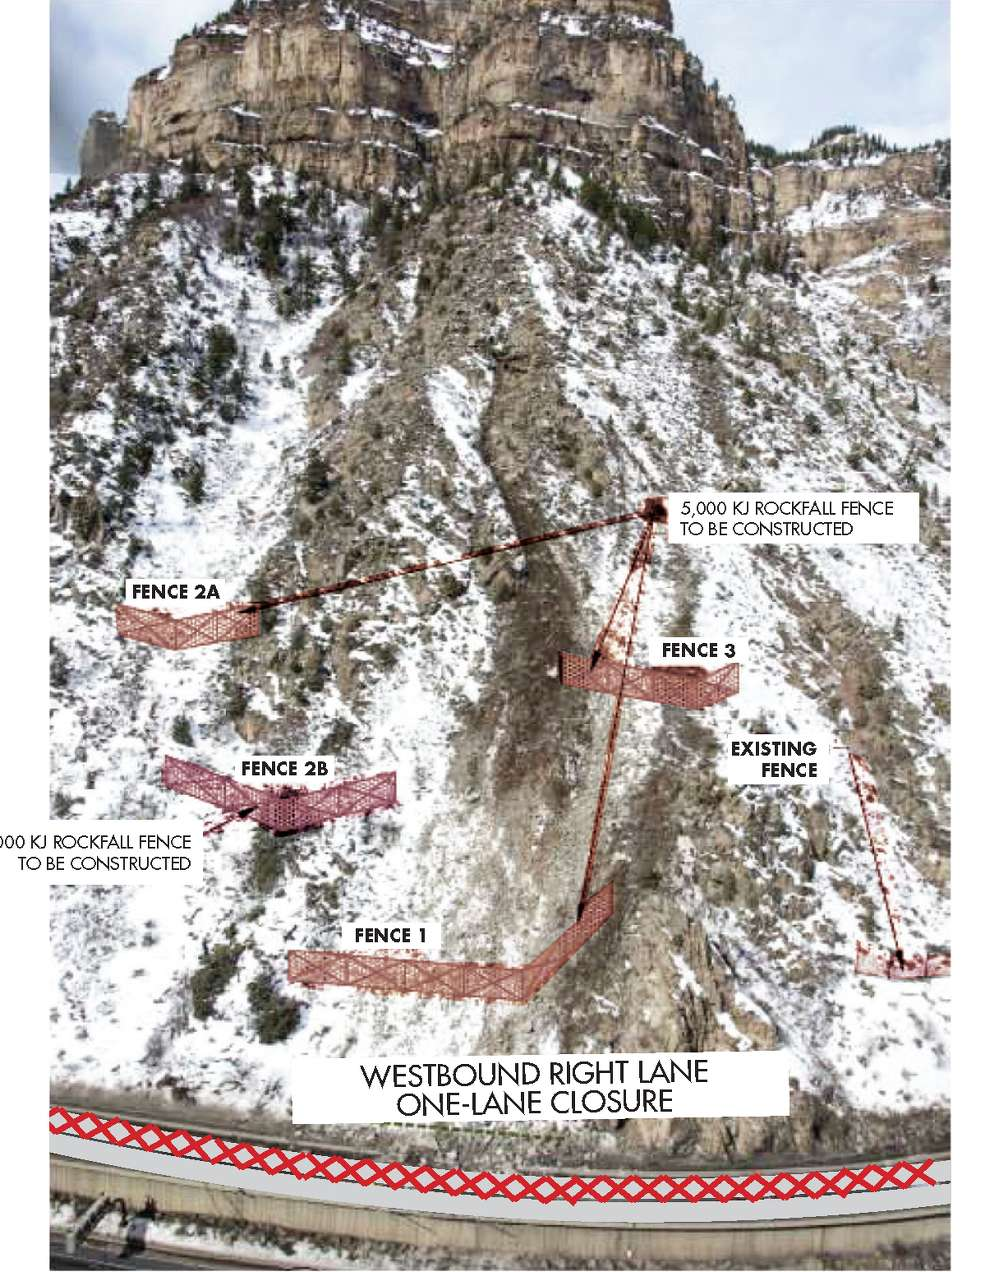 CDOT photo. Permanent mitigation measures will create a structural barrier to accommodate potential future rock slides.